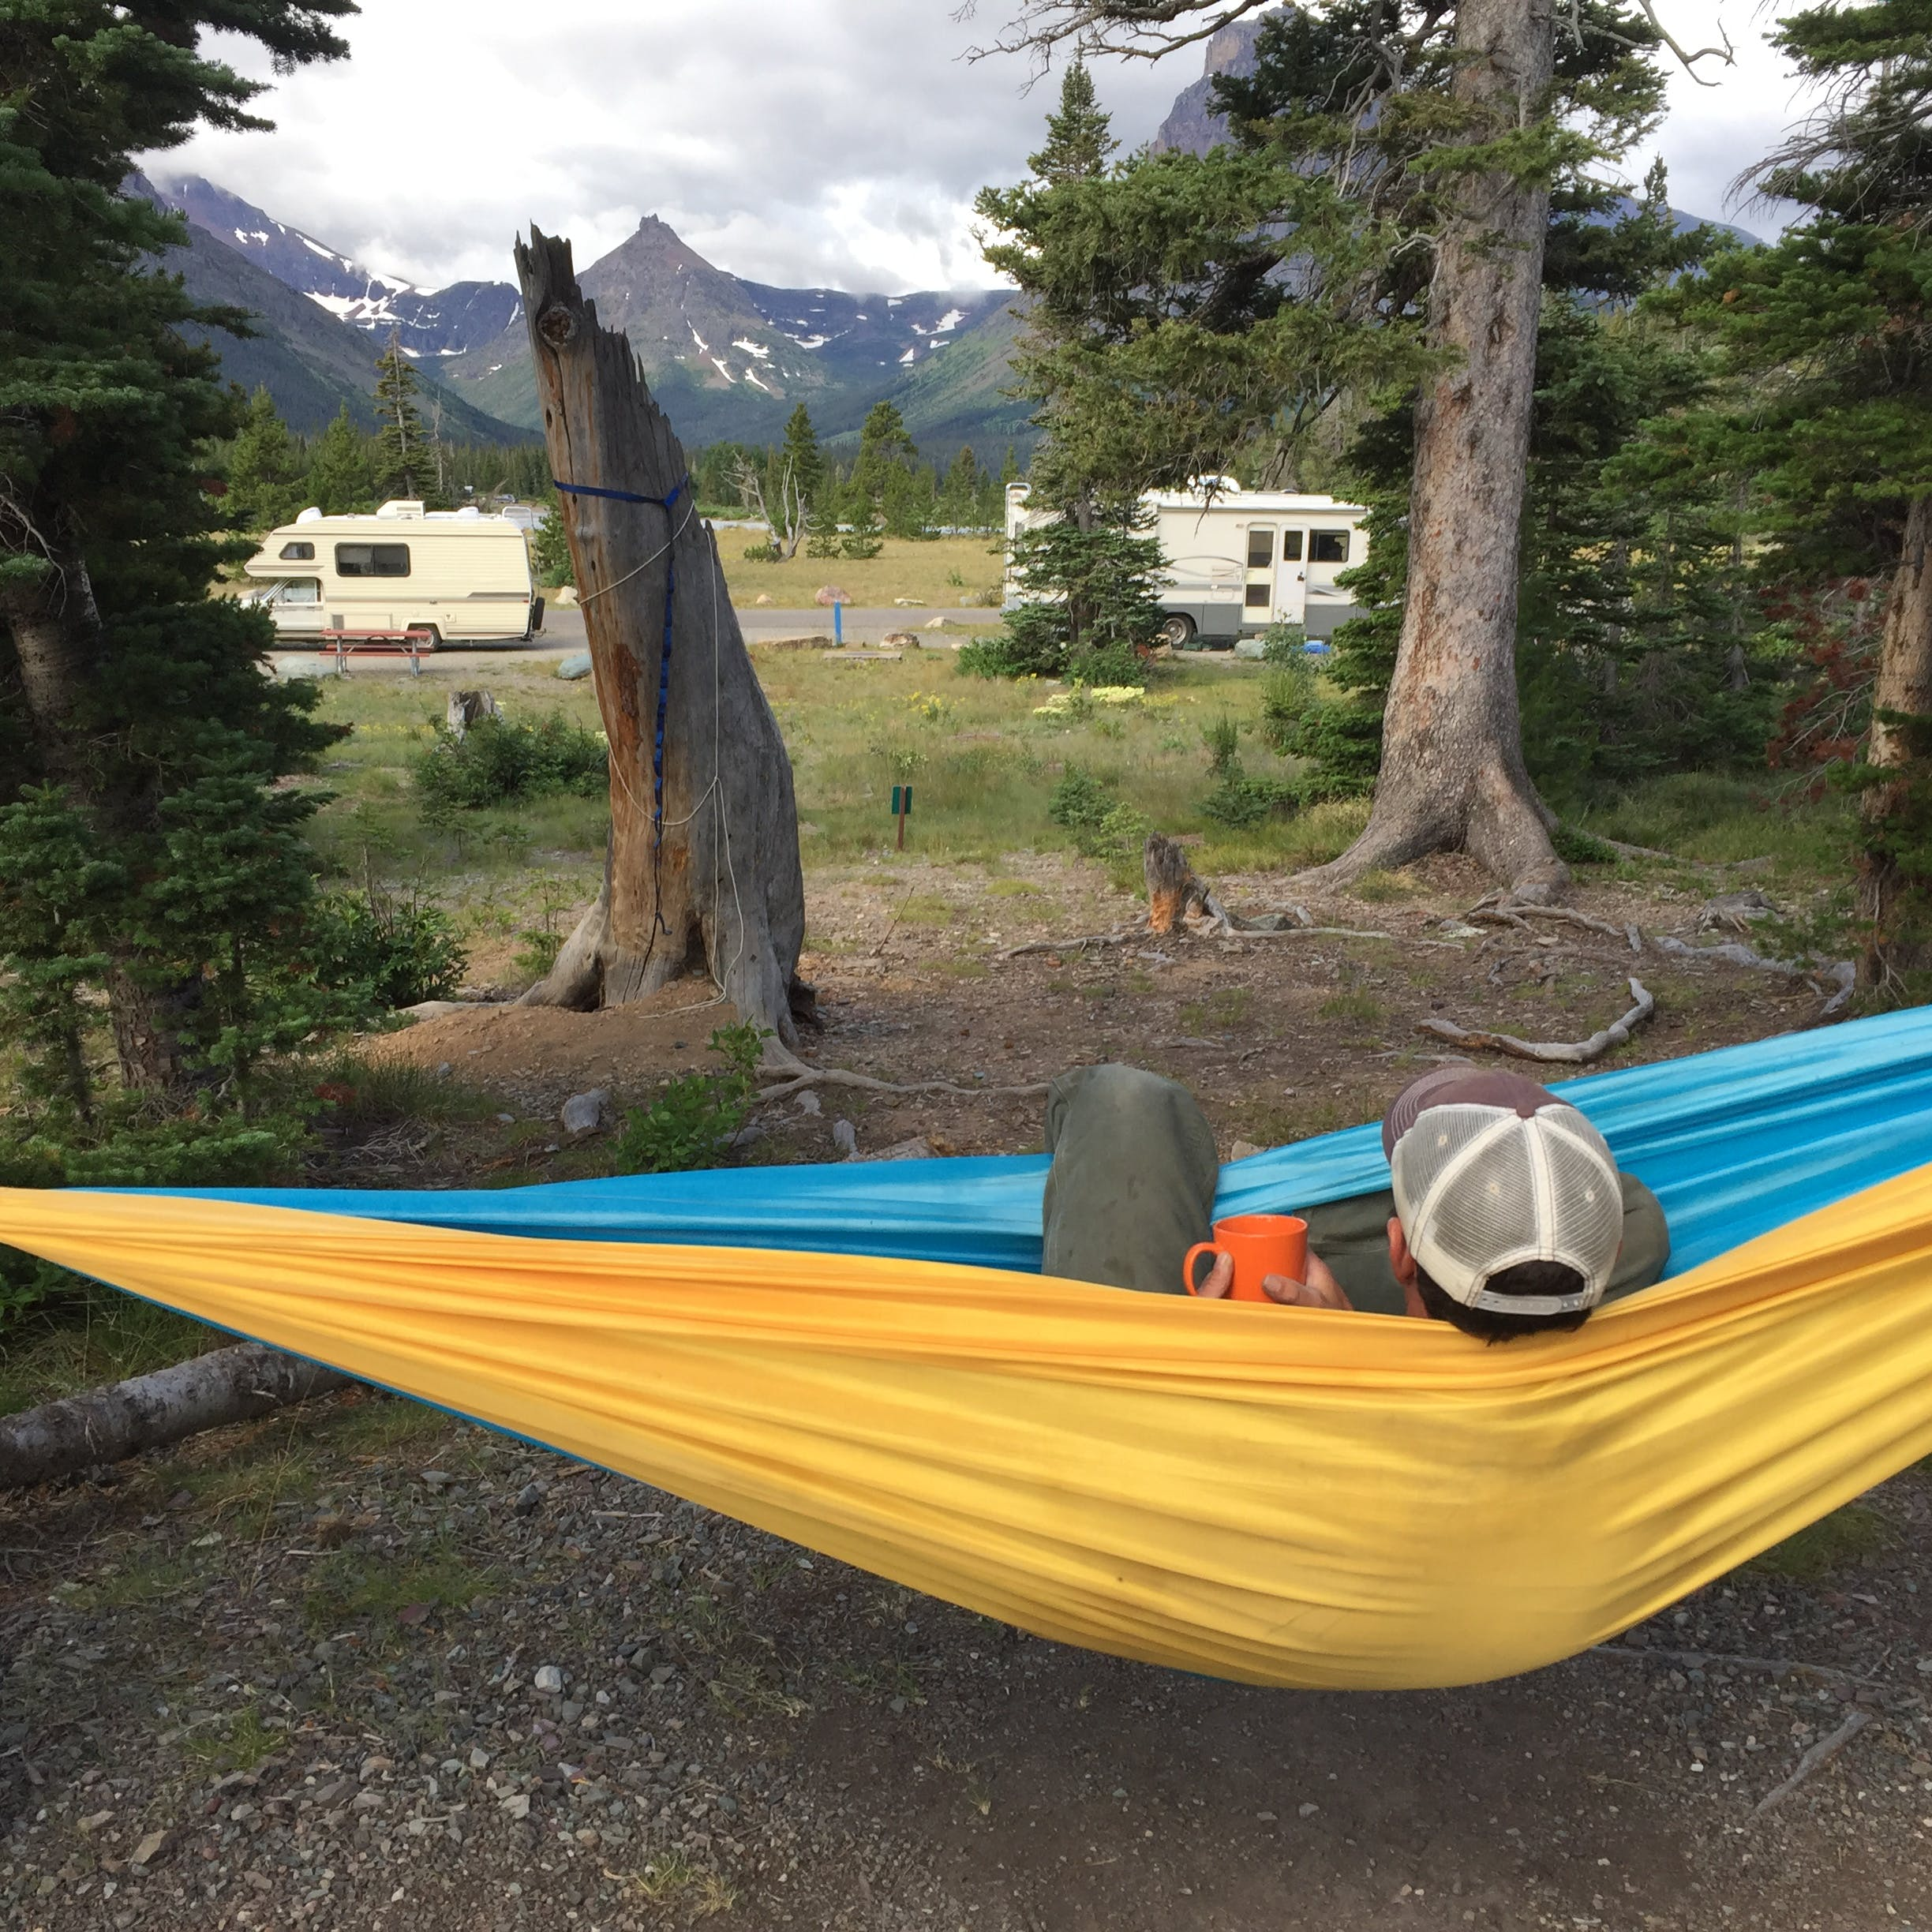 Person sitting in a yellow hammock at an RV site